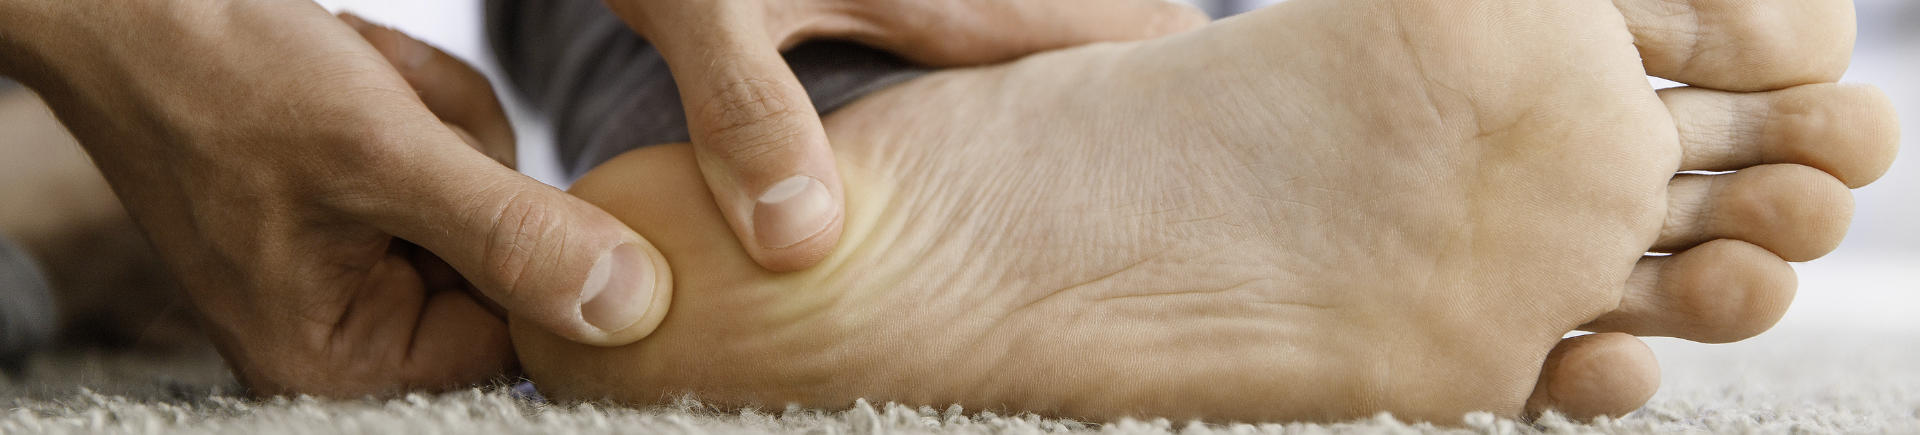 a person suffering from foot plantar fasciitis